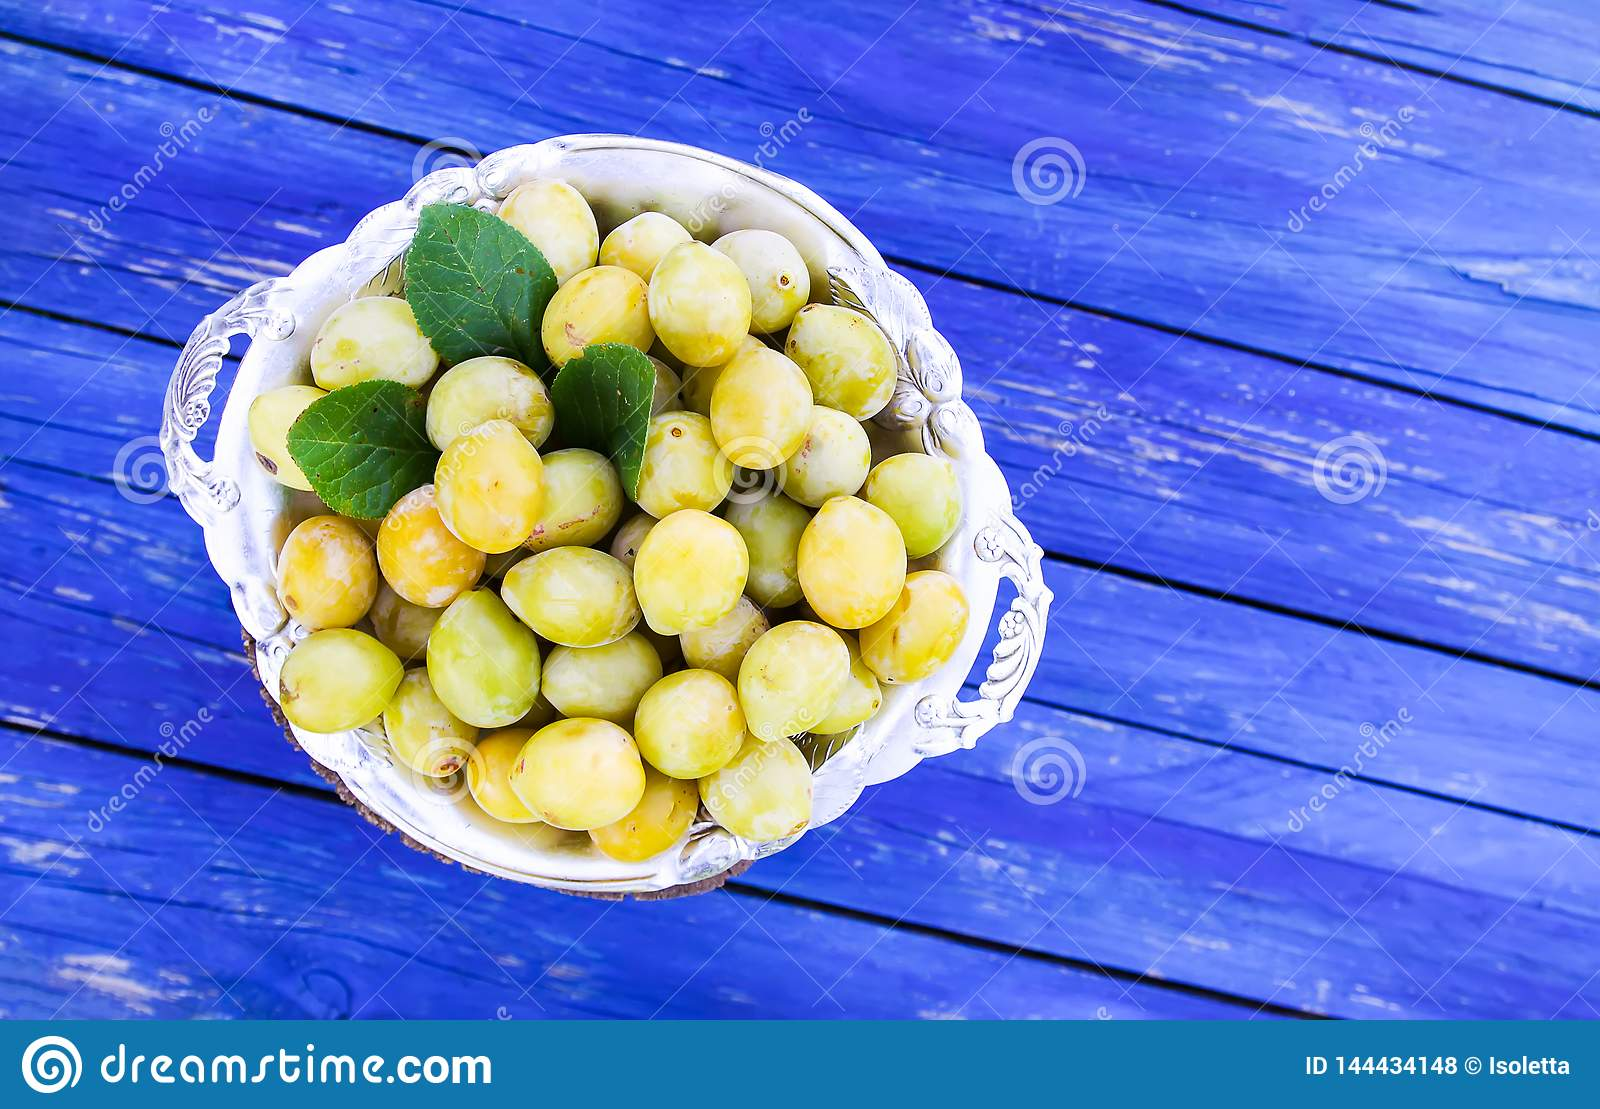 Fresh yellow plums. Ripe fruits in a plate on blue boards background